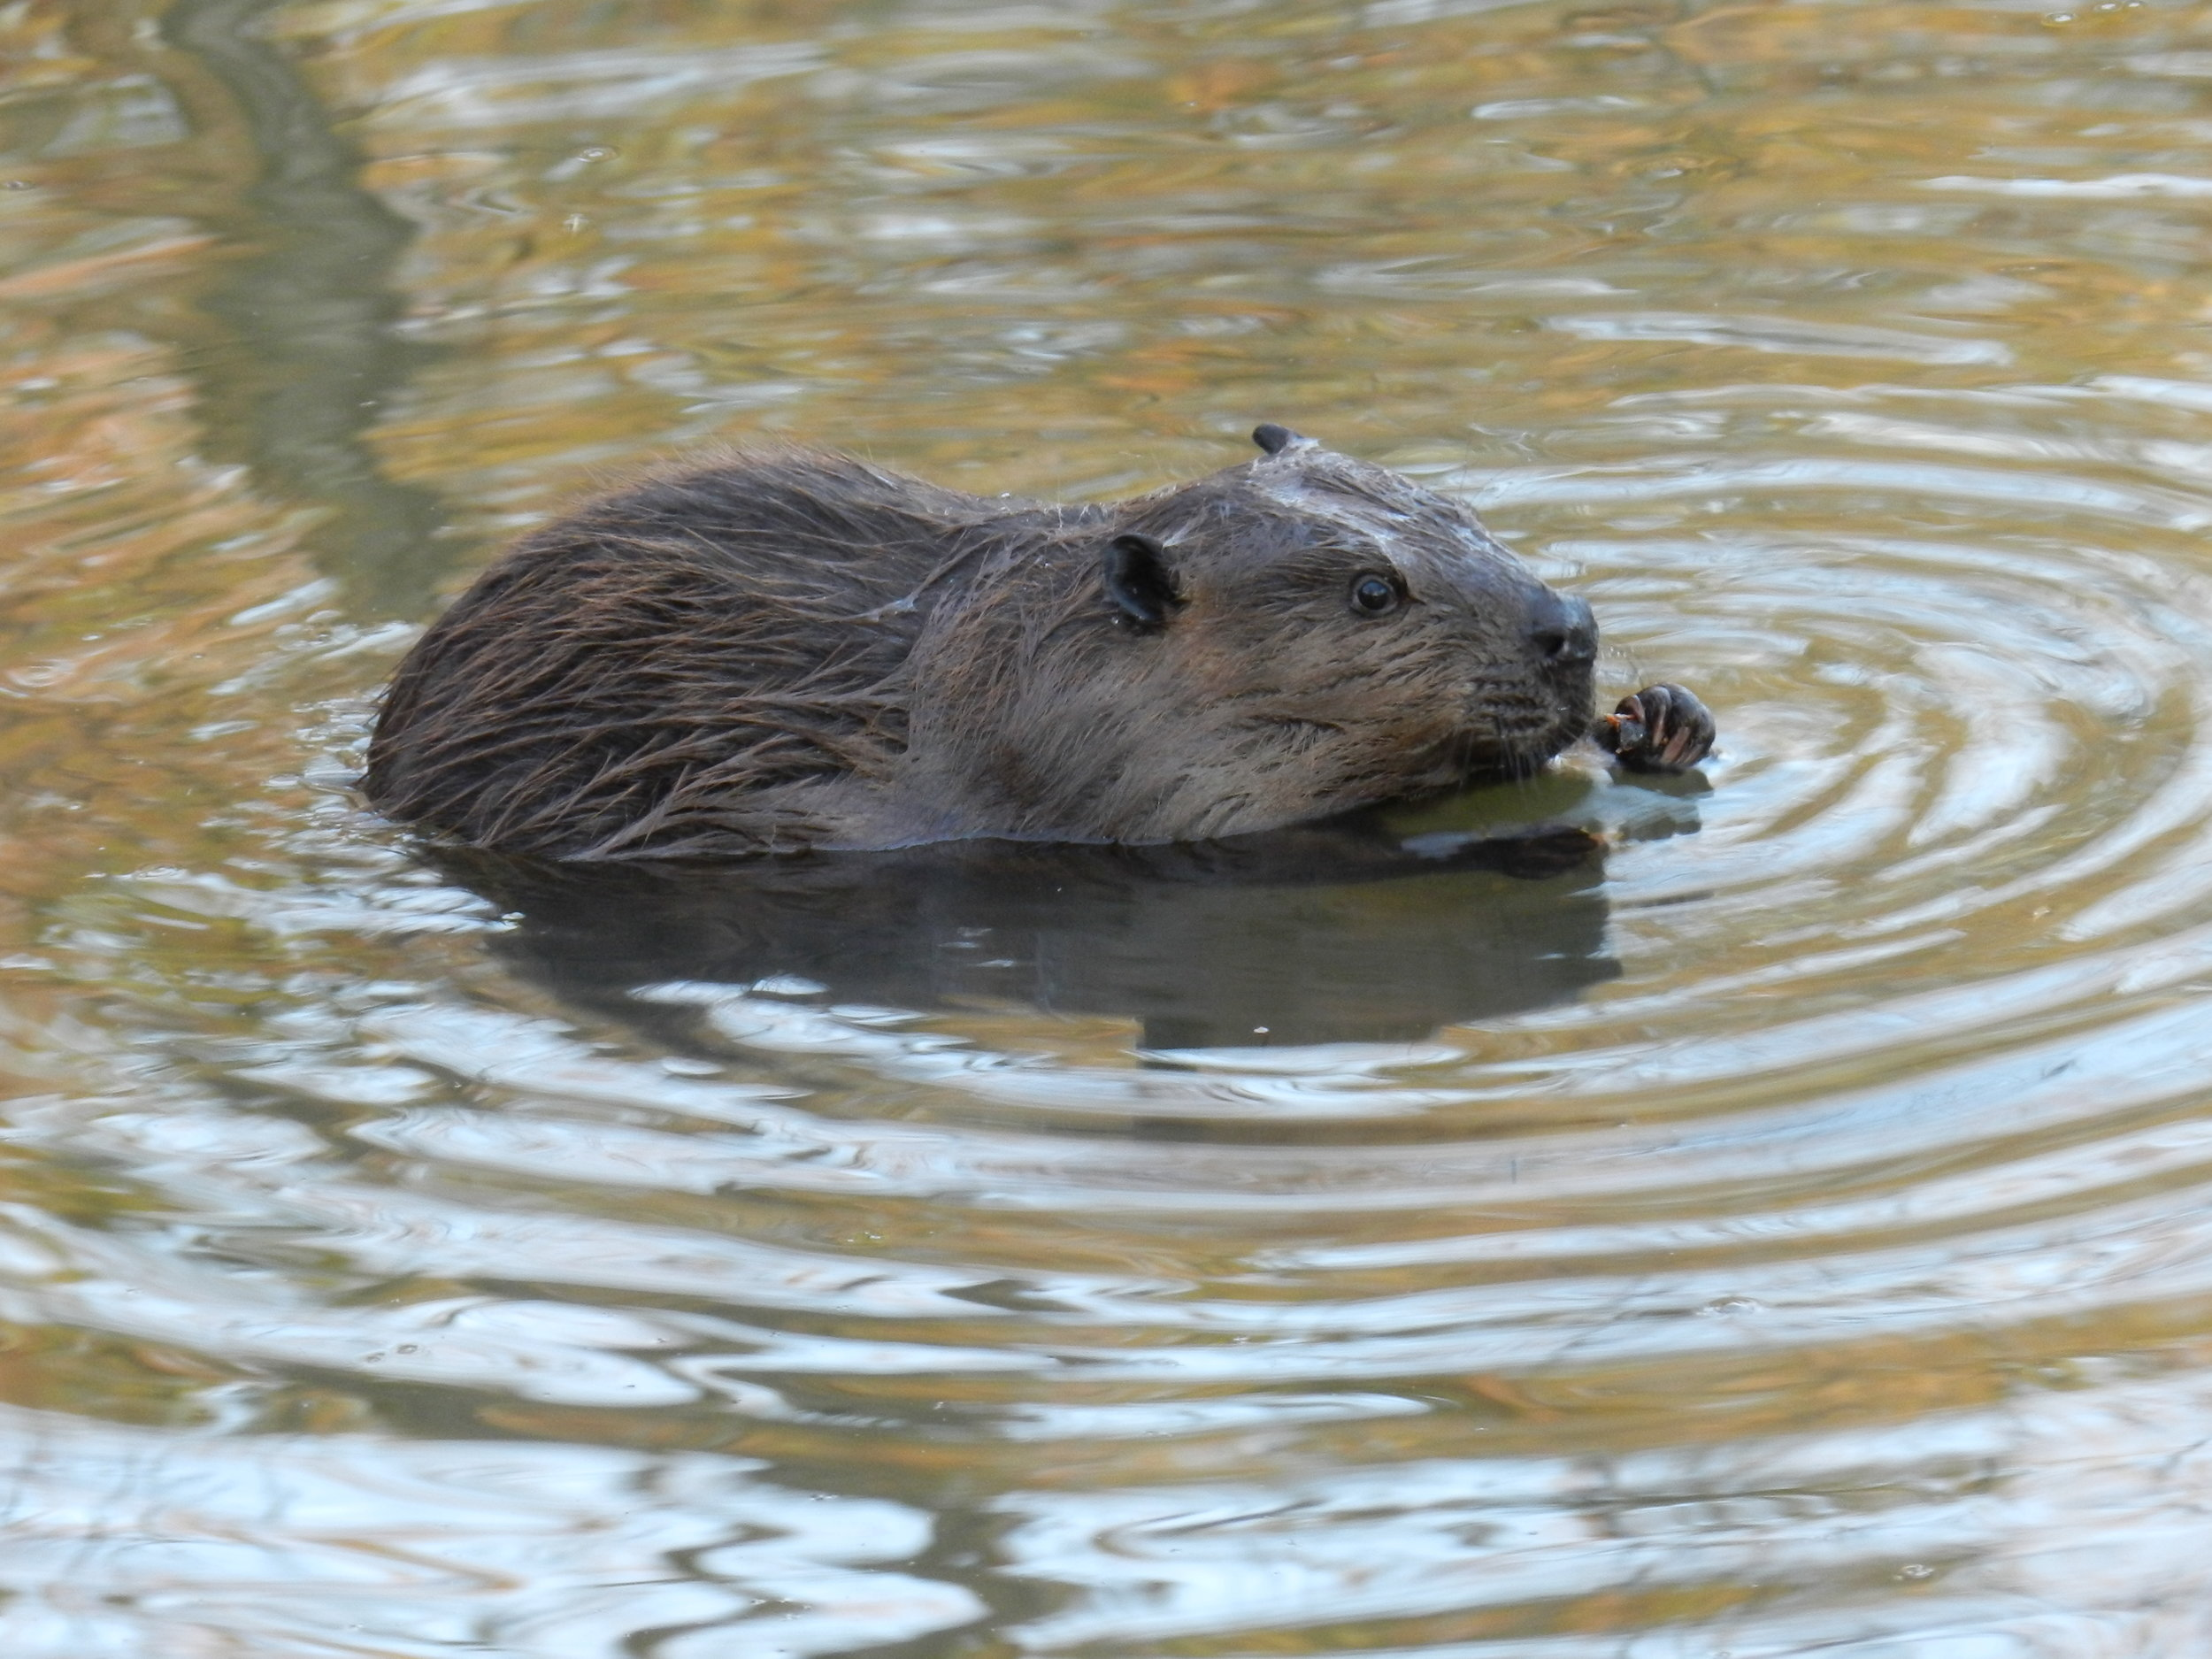 Beavers and Wetlands  What role do beavers play in the water cycle? Find out as we explore our Wetland and Woodland Field Education site and discover how beavers and the water cycle shape the land.